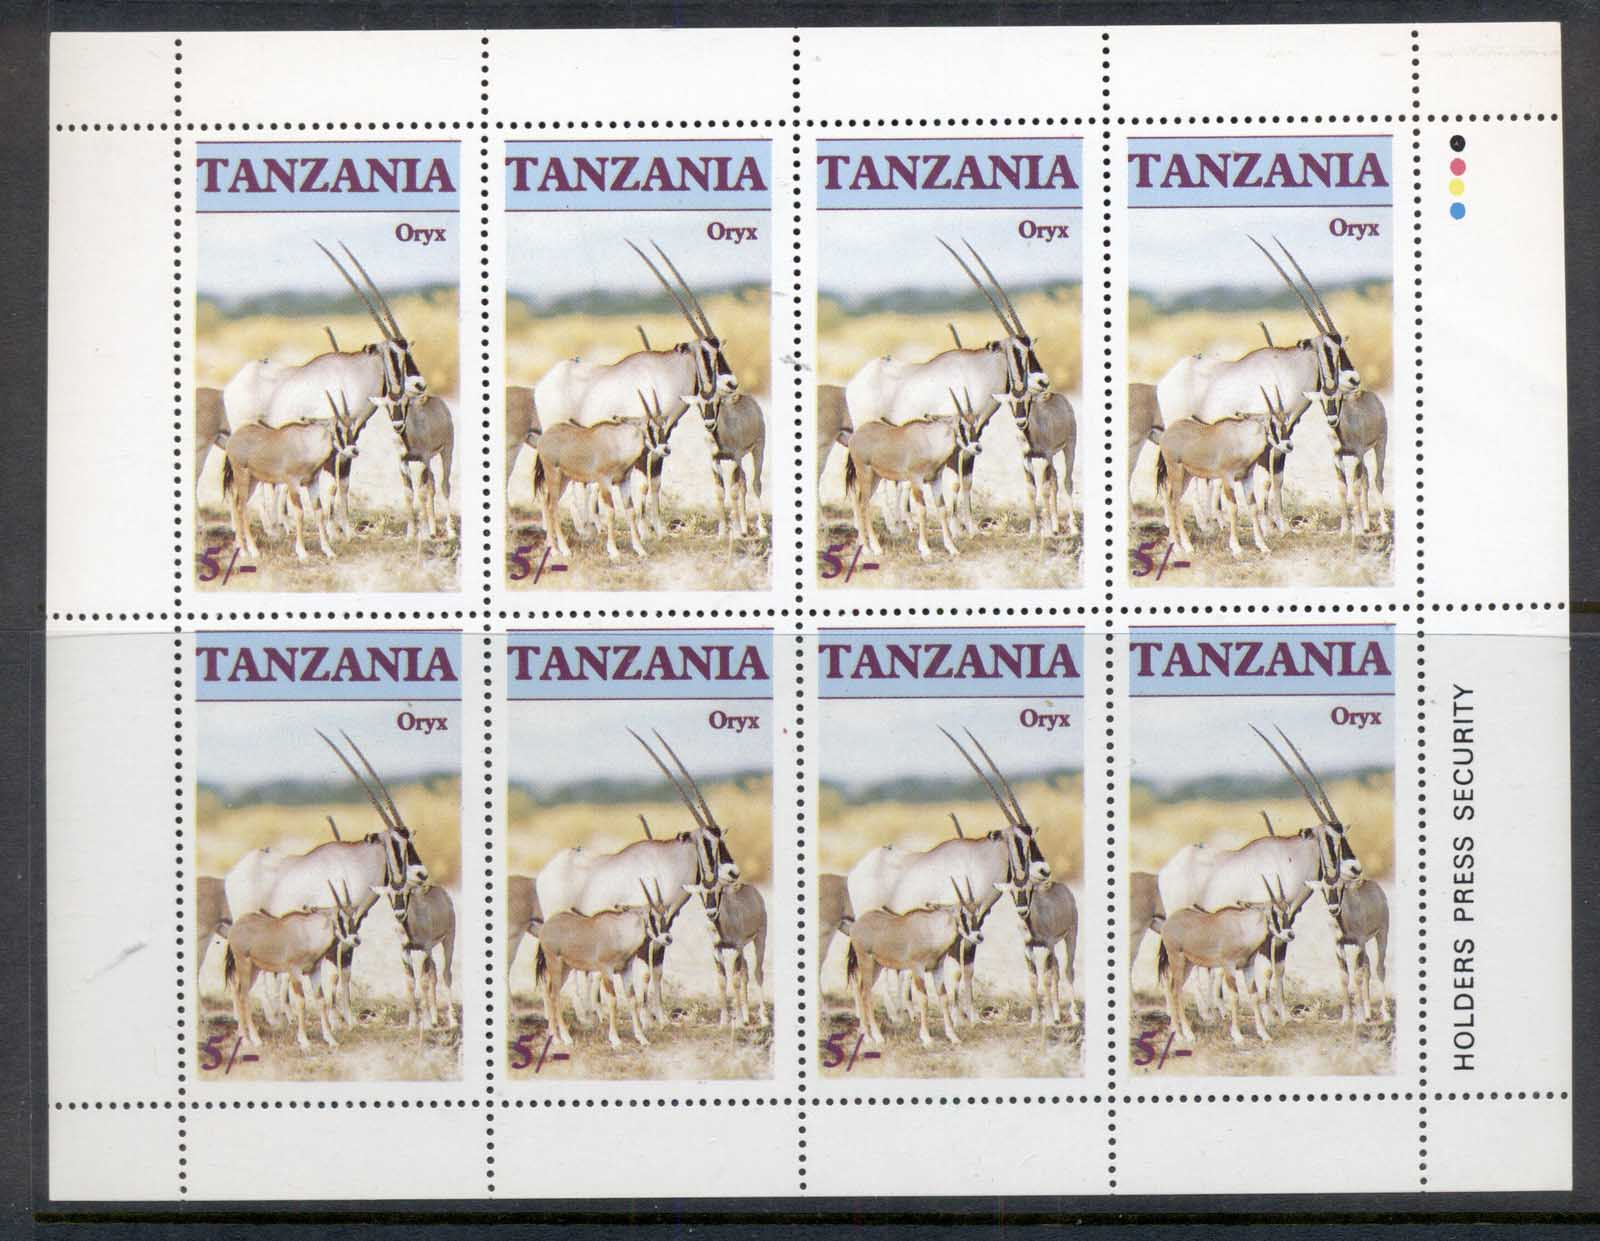 Tanzania 1986 Endangered Wildlife, Oryx 5/- sheetlet MUH